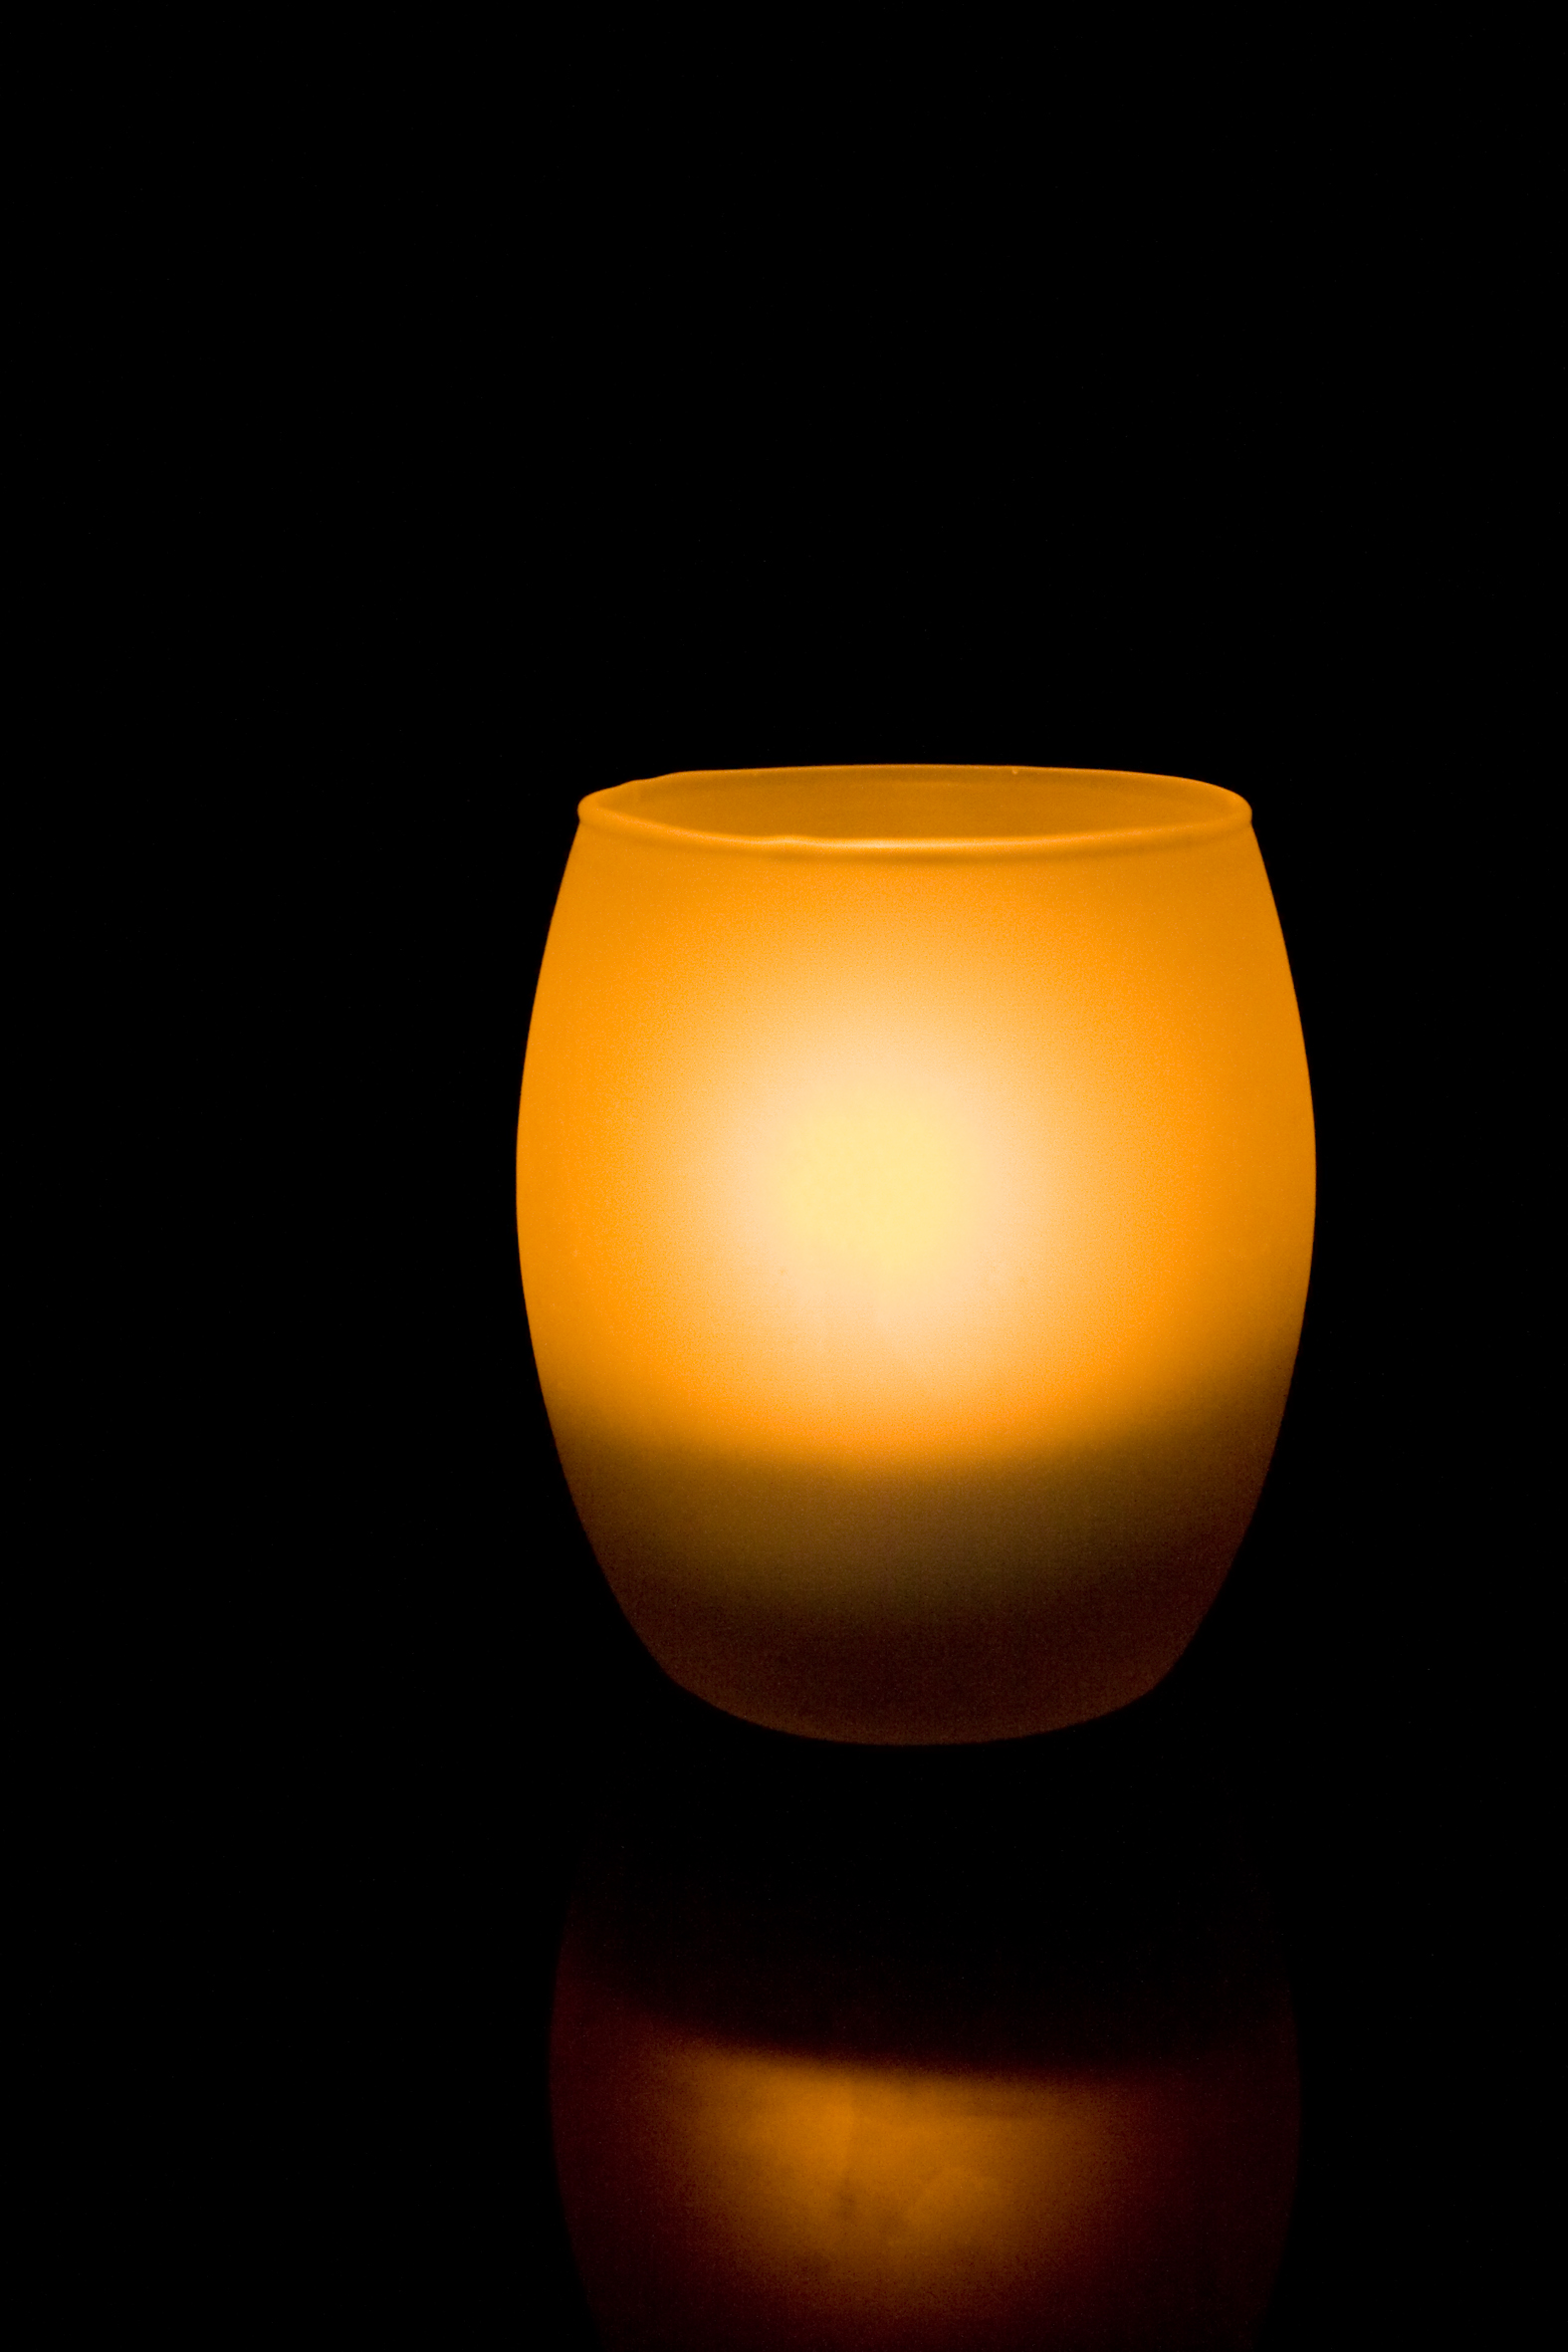 4 Inch Flameless Blow On-Off Hurricane Candle with Frosted Glass Holder - Yellow